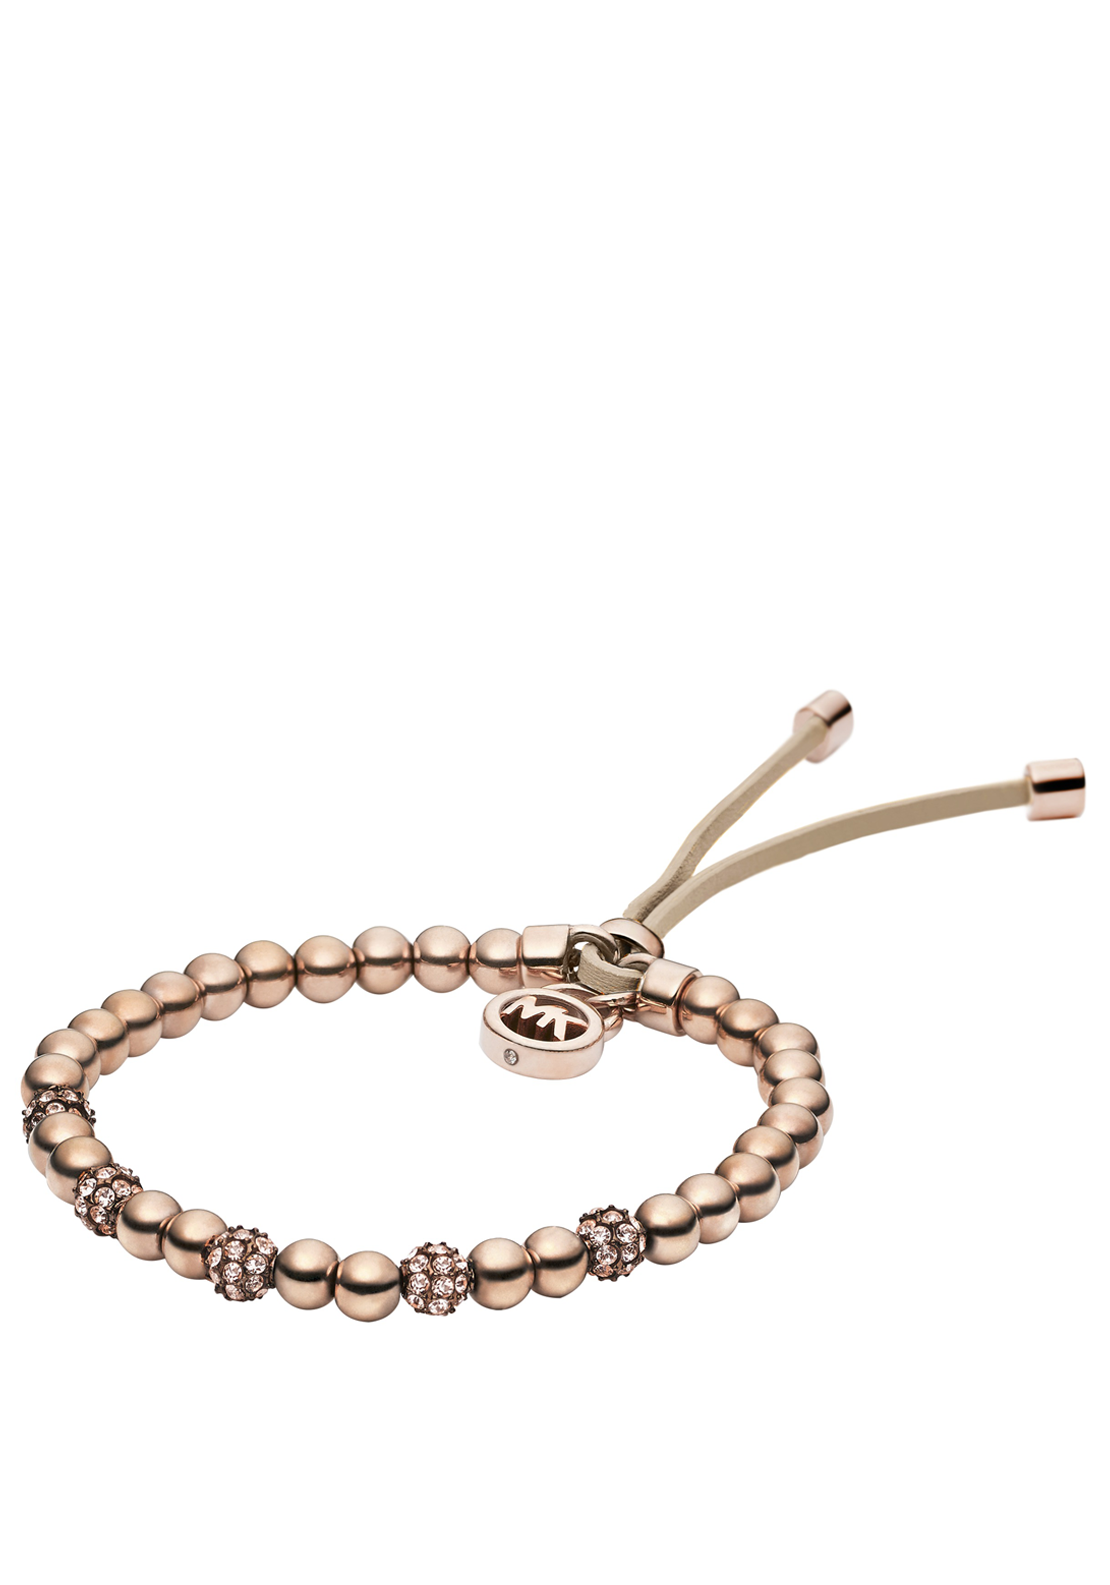 Michael Kors Womens Beaded Bracelet, Rose Gold